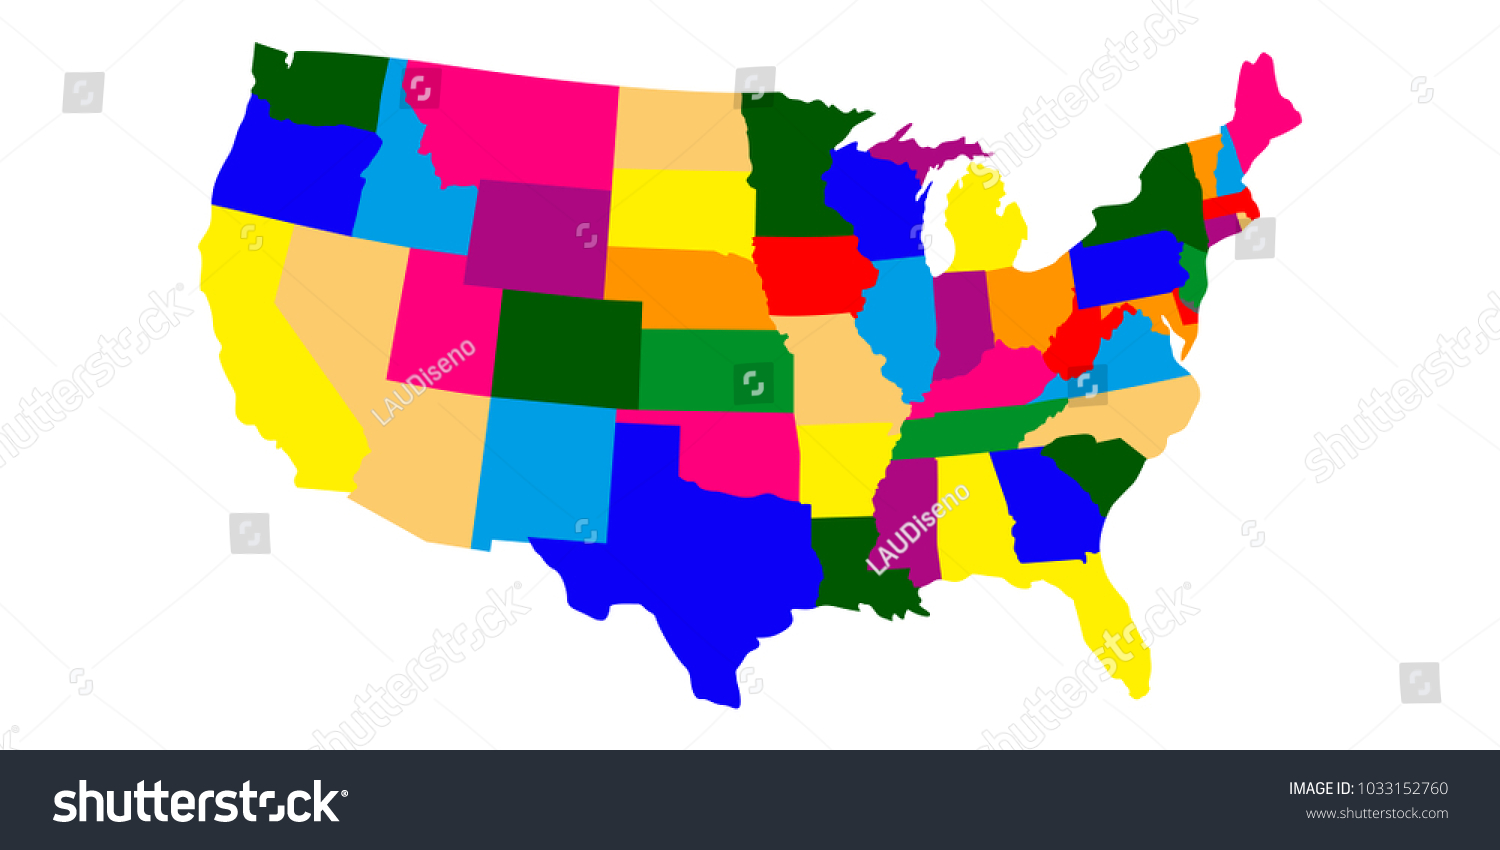 A Political Map Of The United States.Political Map United States Stock Vector Royalty Free 1033152760